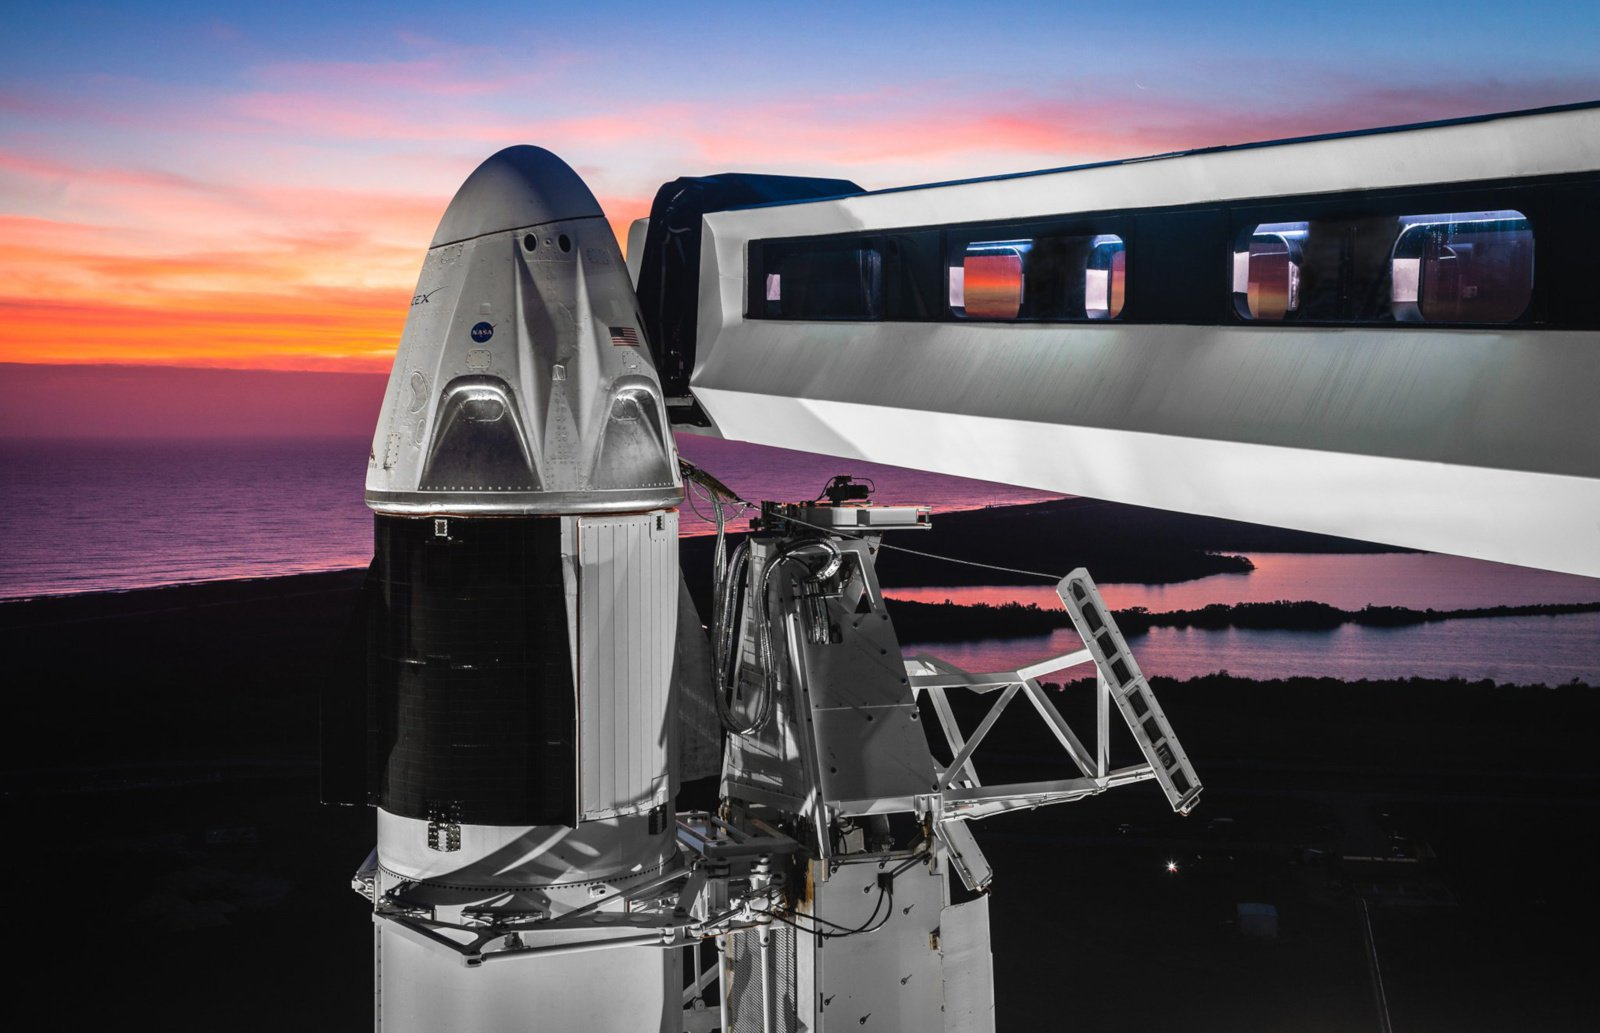 SpaceX has postponed the first flight of the Crew Dragon to 2 March